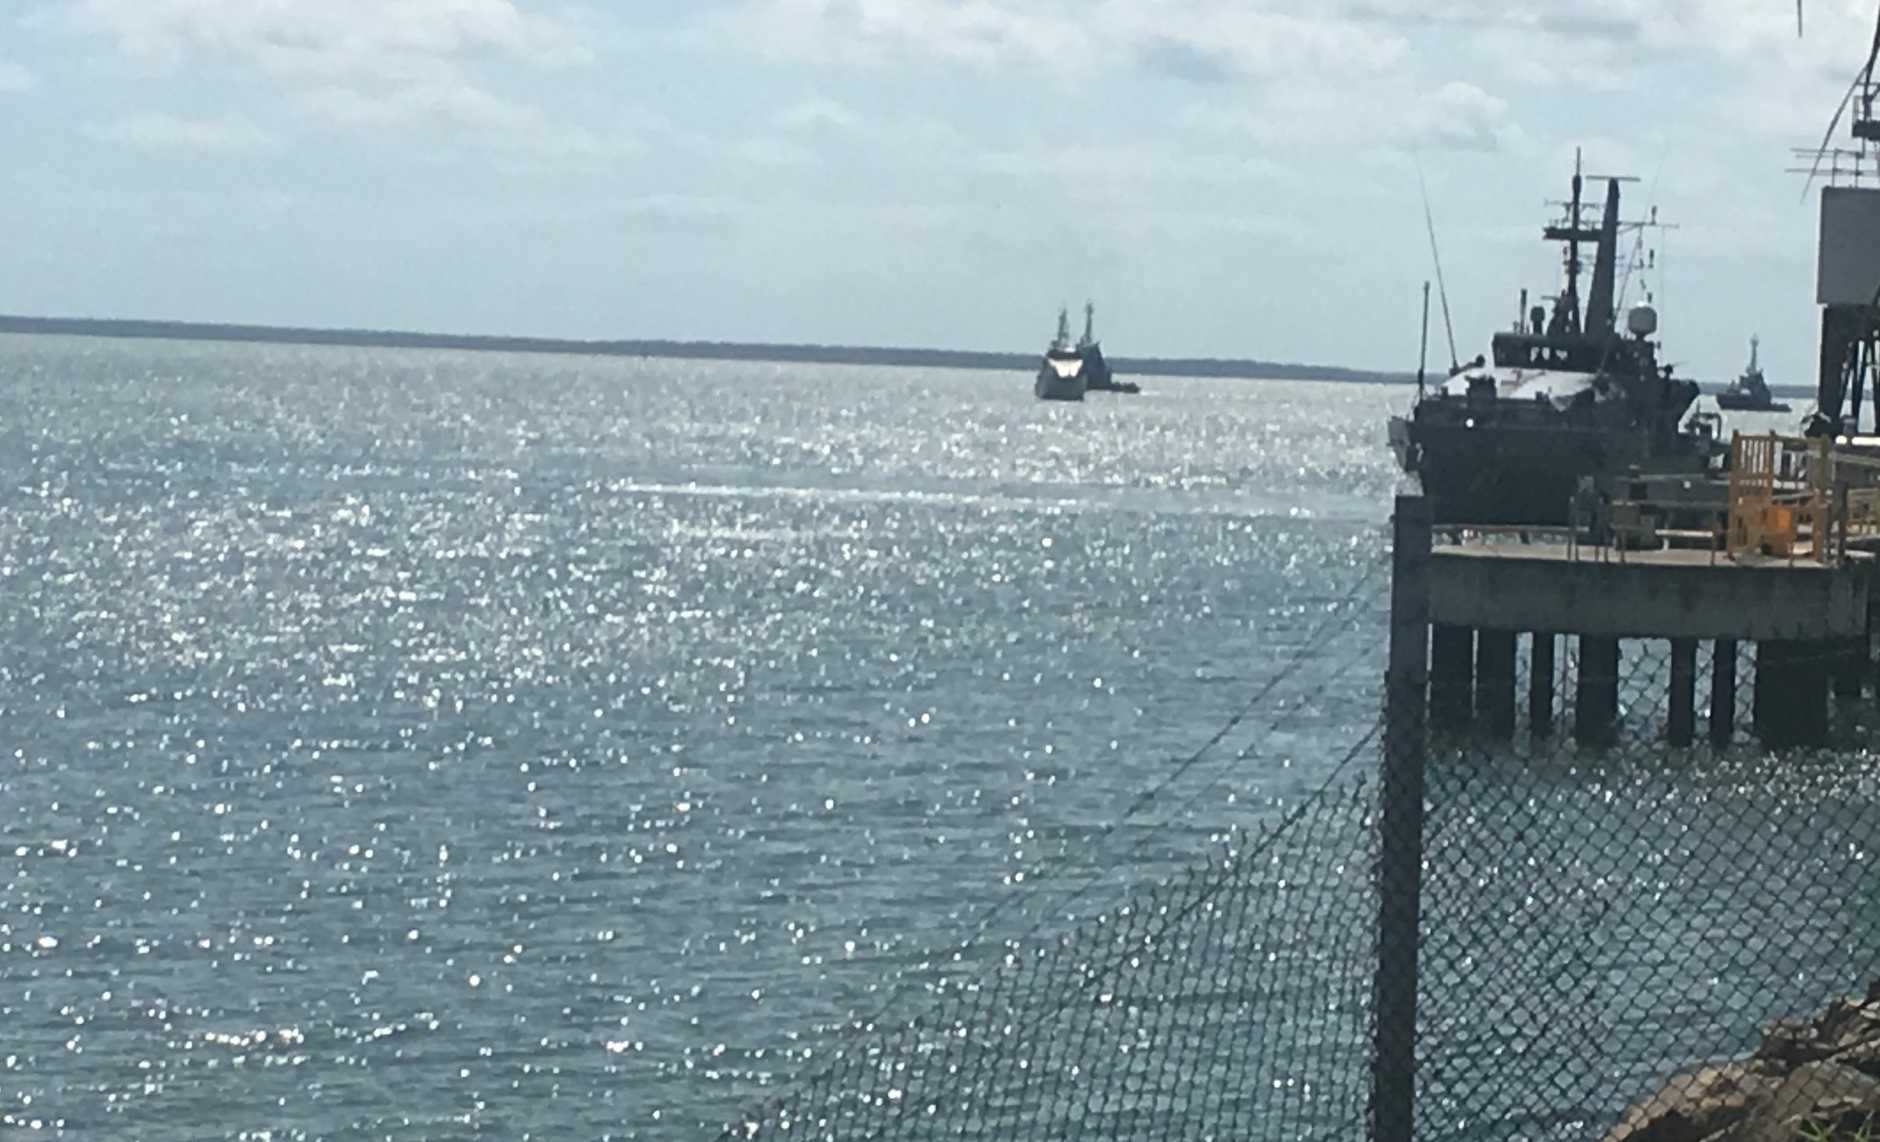 Police intercept two illegal fishing vessels off Gladstone reef